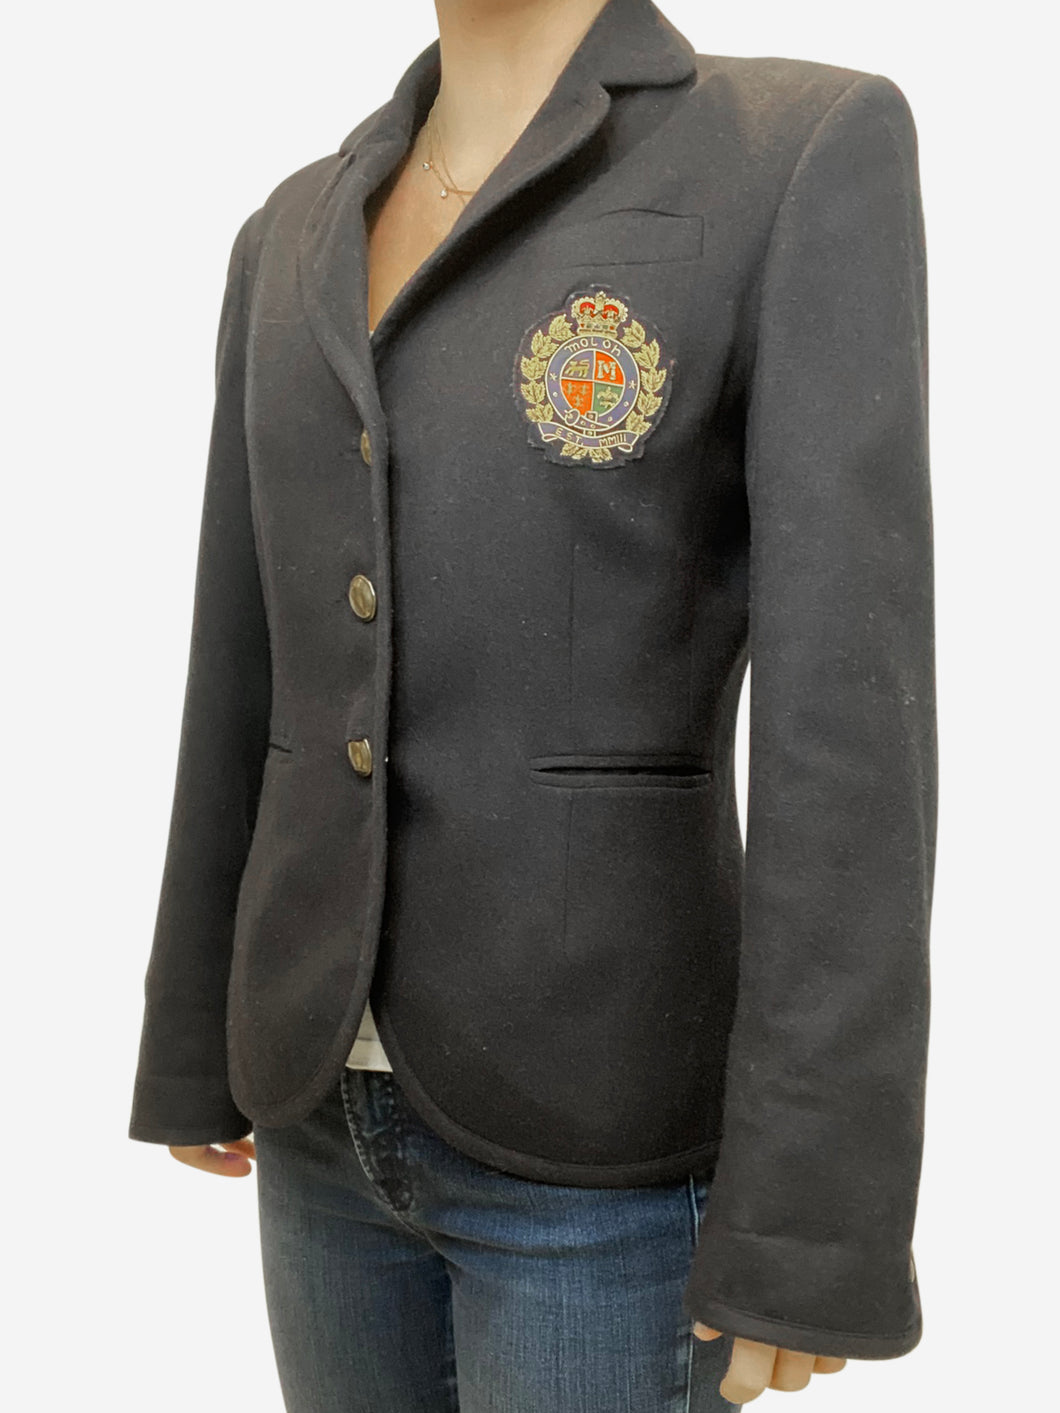 Navy blazer with red and gold crest - size UK 10